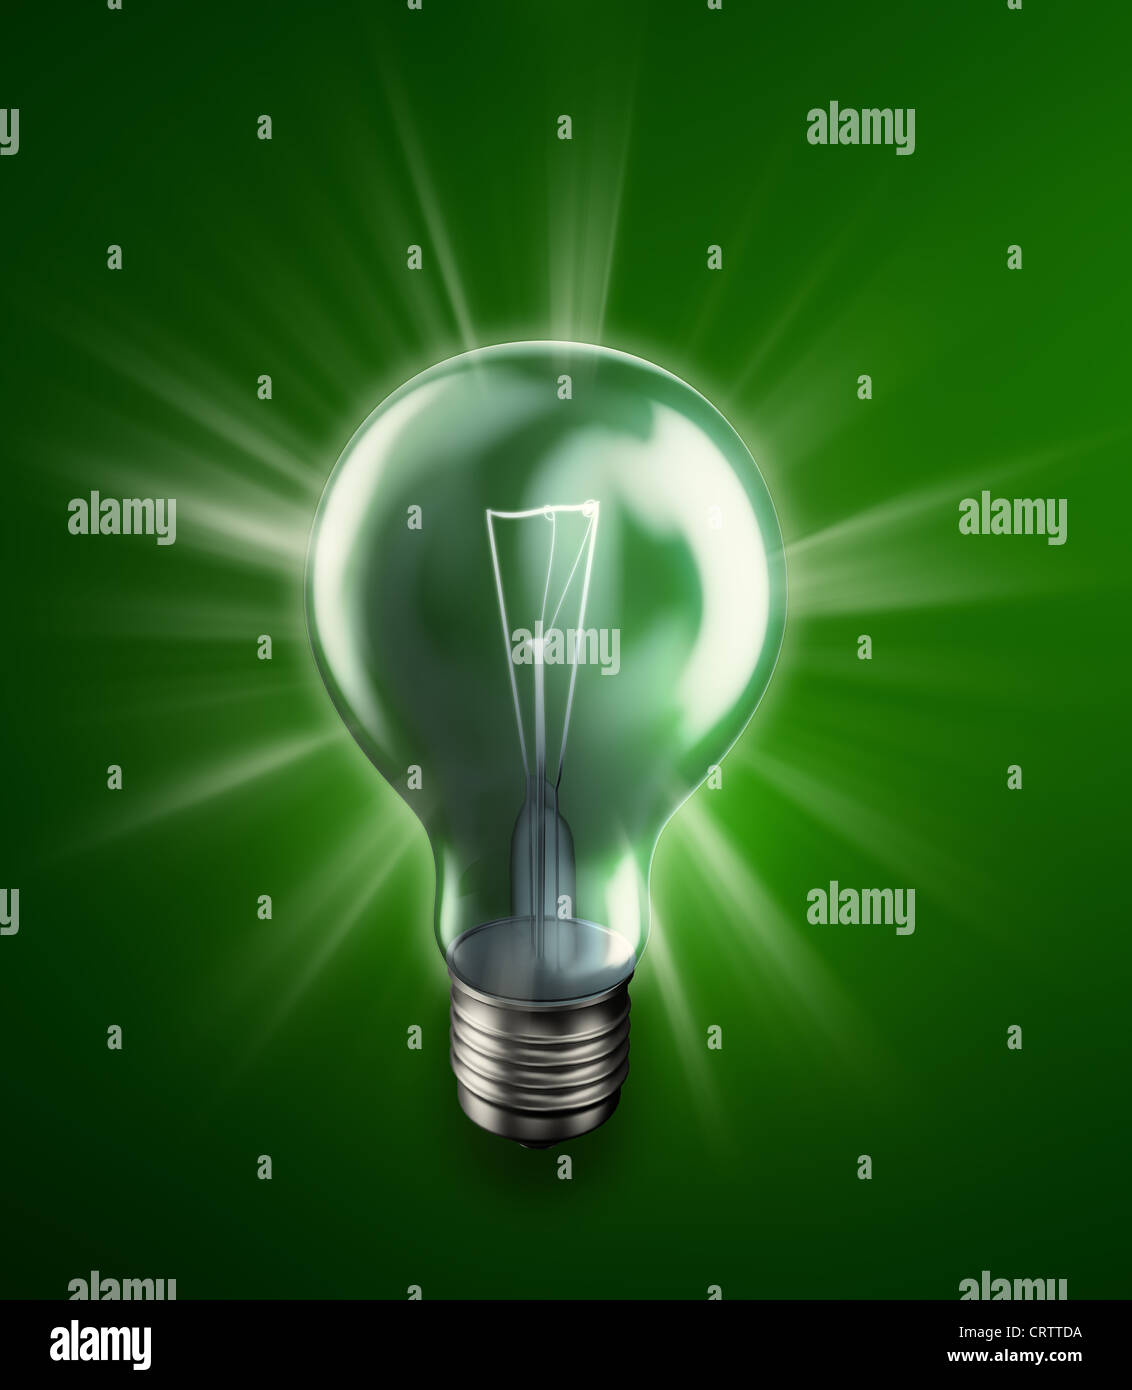 Ampoule incandescent -energy concept illustration Photo Stock